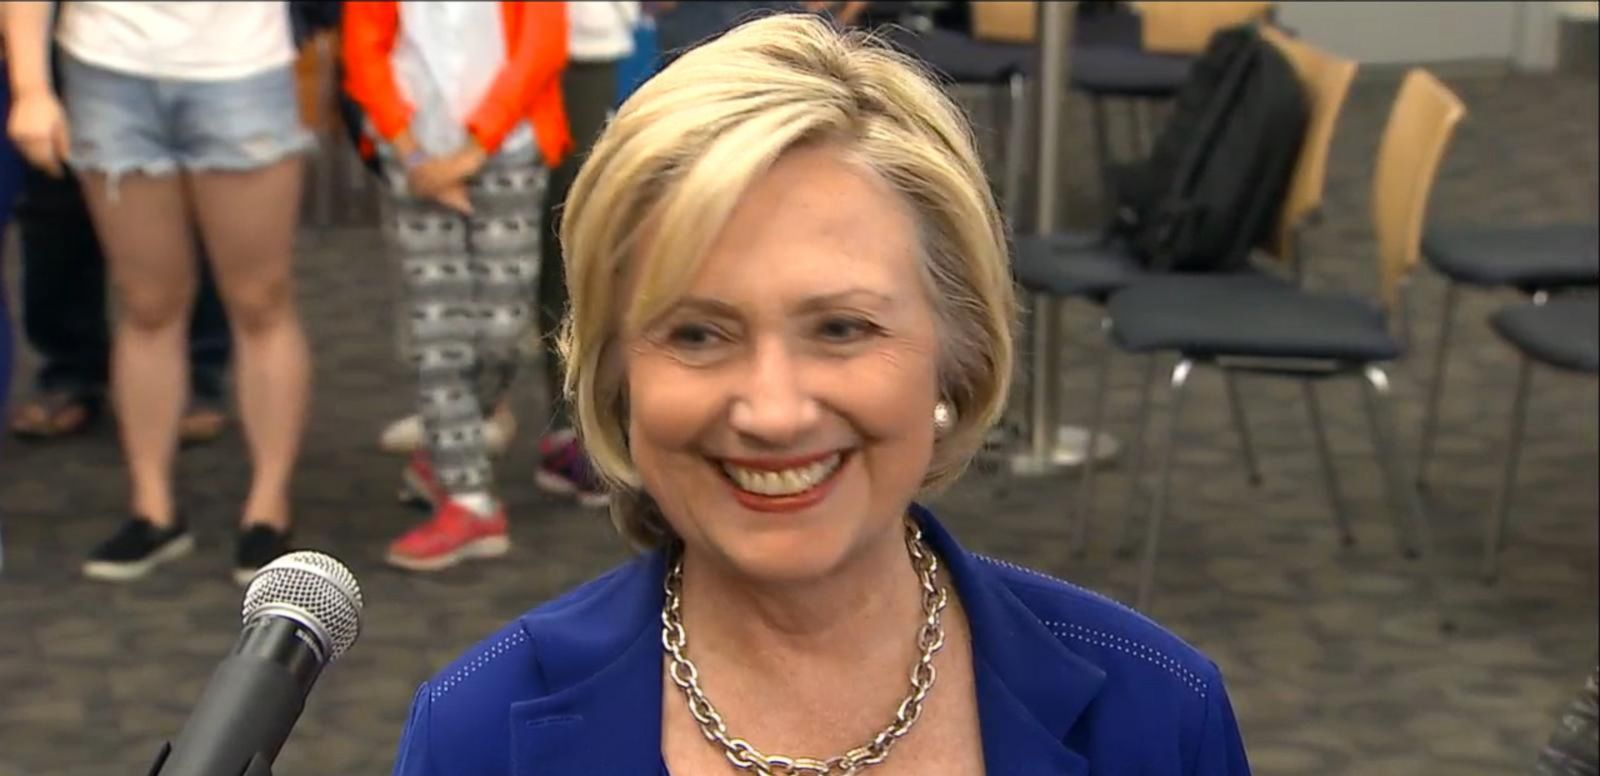 VIDEO: In Iowa, Clinton jokes with reporters about the rope used to corral reporters at 4th of July parade.